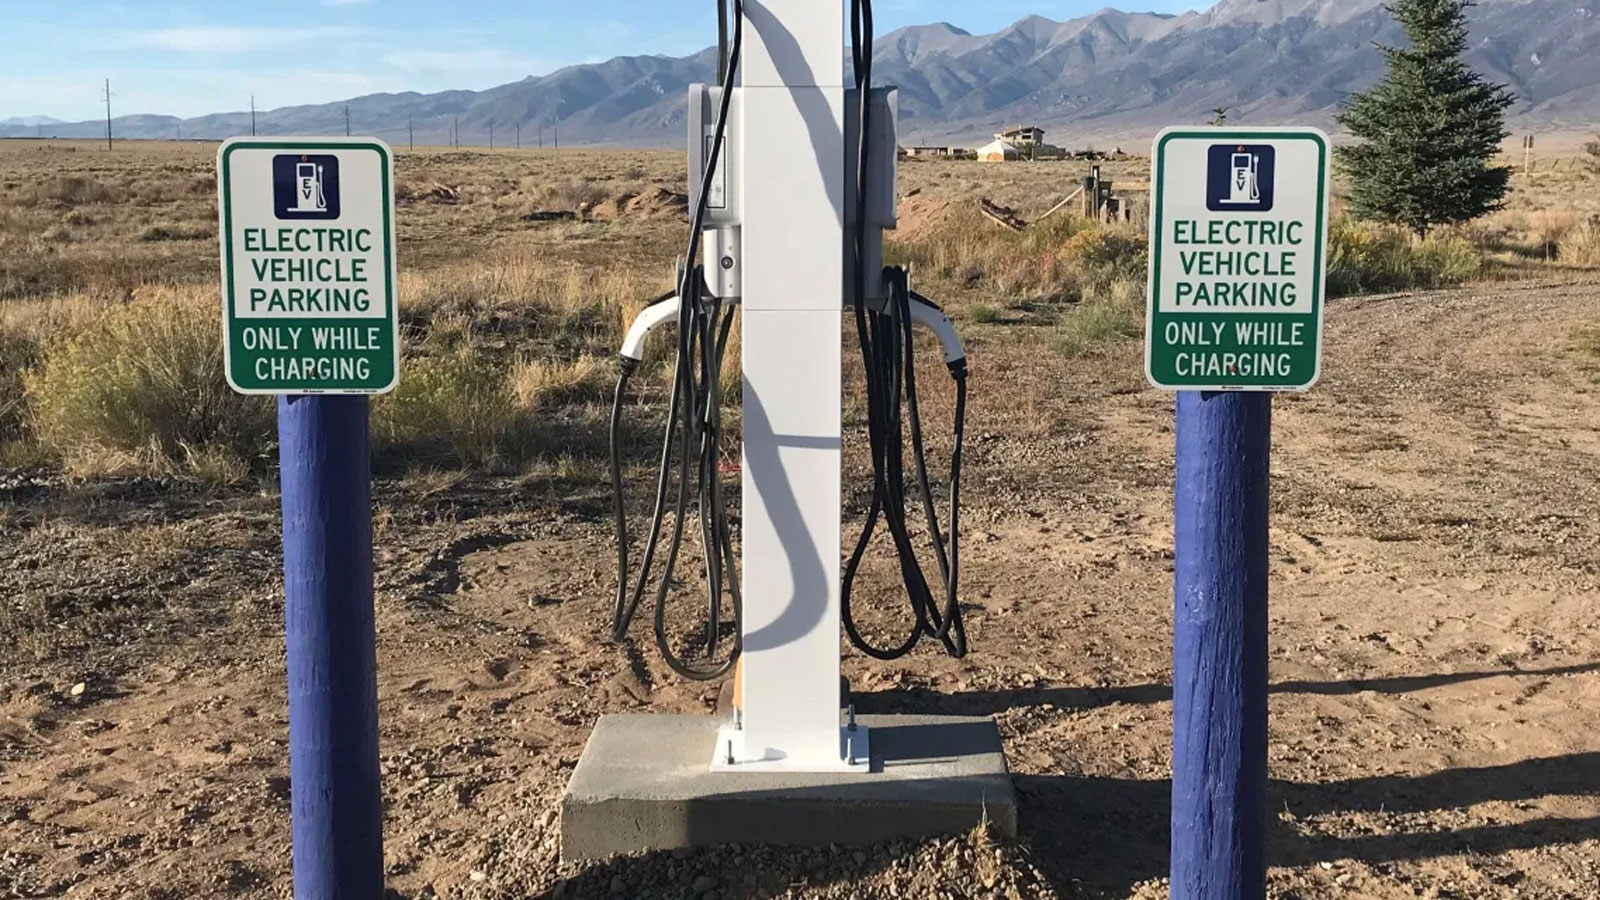 <h4>RECHARGE WHERE YOU RECHARGE</h4><h5>Coloradans should not have to choose between having an electric vehicle and visiting the parks they love. We need to make it easy to recharge our cars where we recharge our souls.</h5>